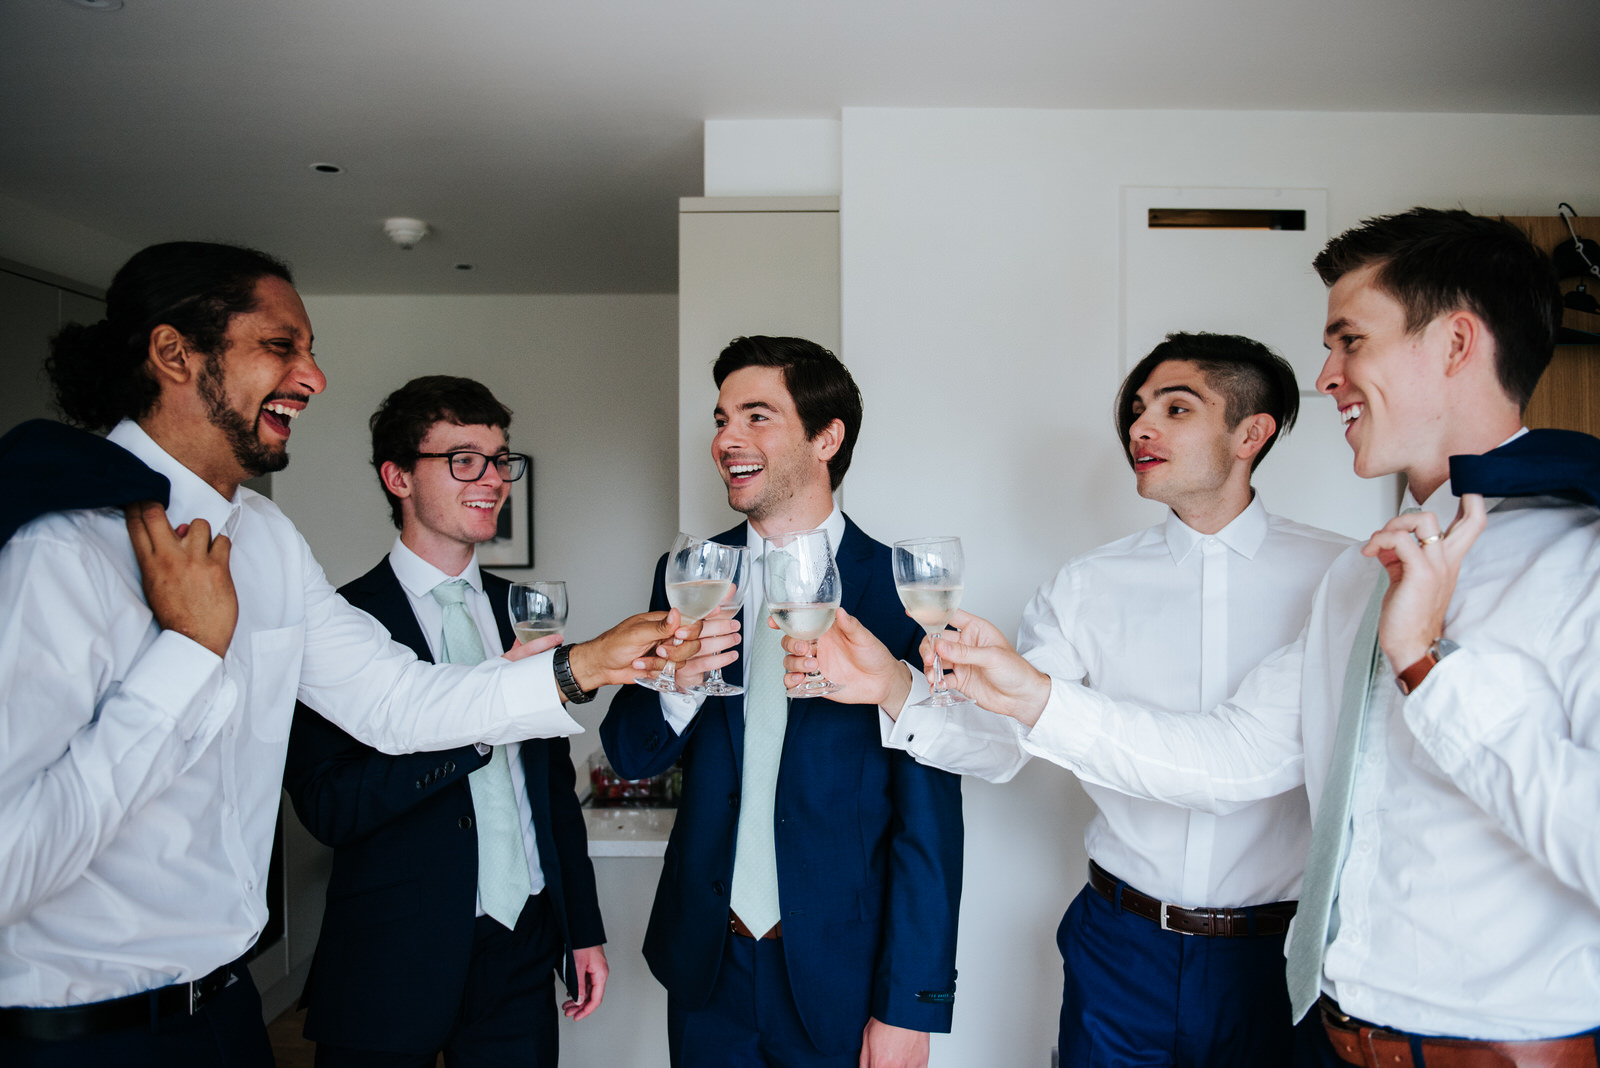 Groom and groomsmen share a toast as they finish getting ready